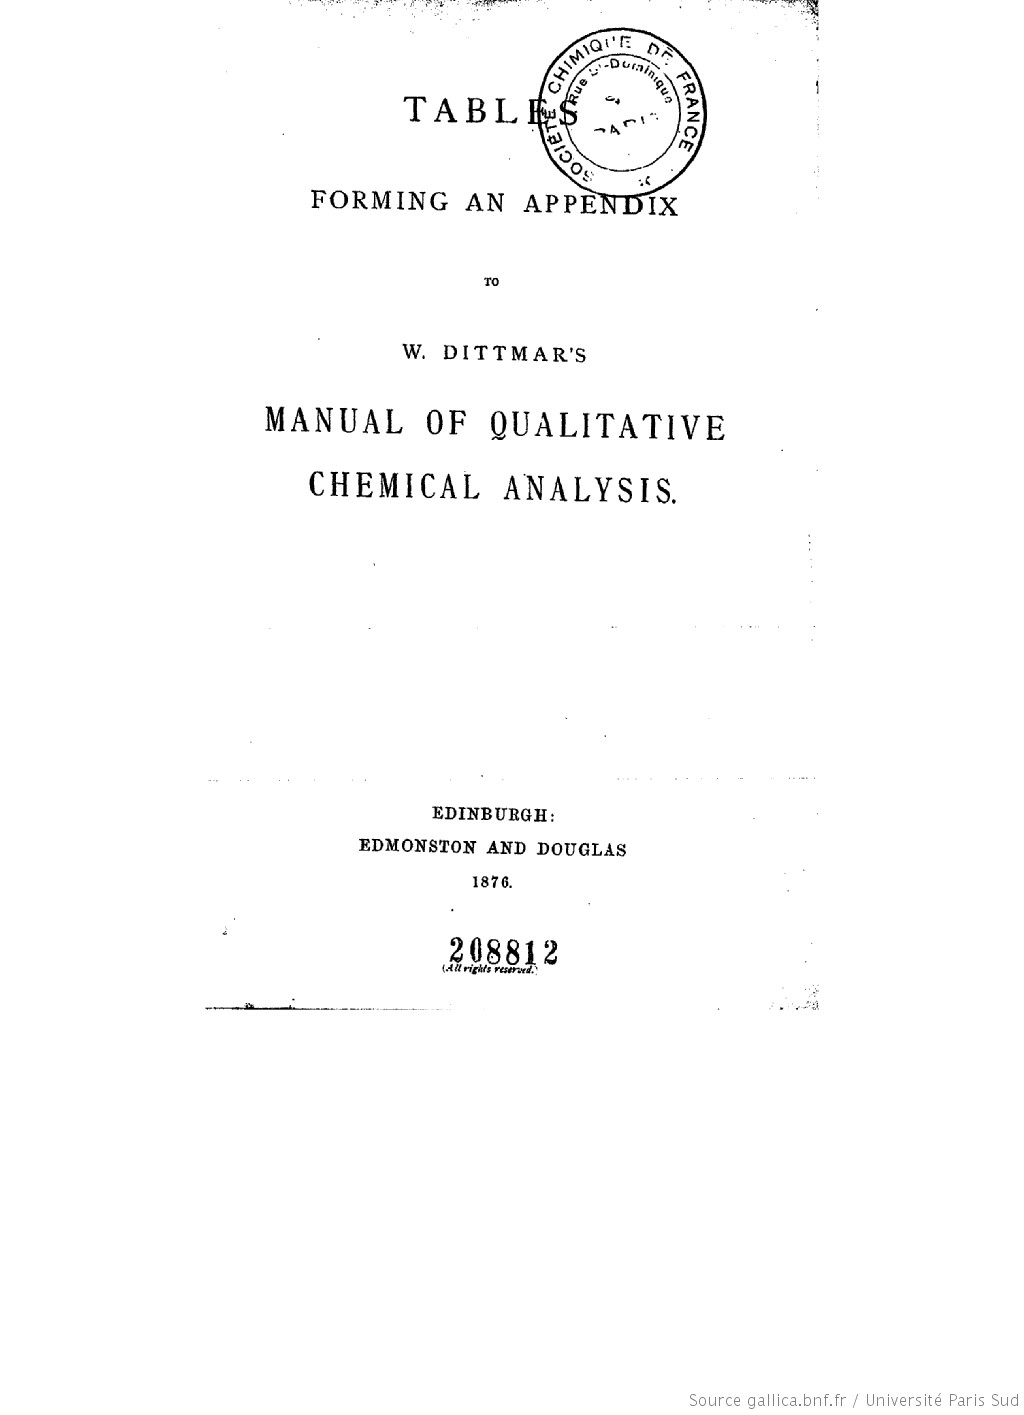 Tables forming an appendix to W. Dittmar's Manual of qualitative chemical analysis